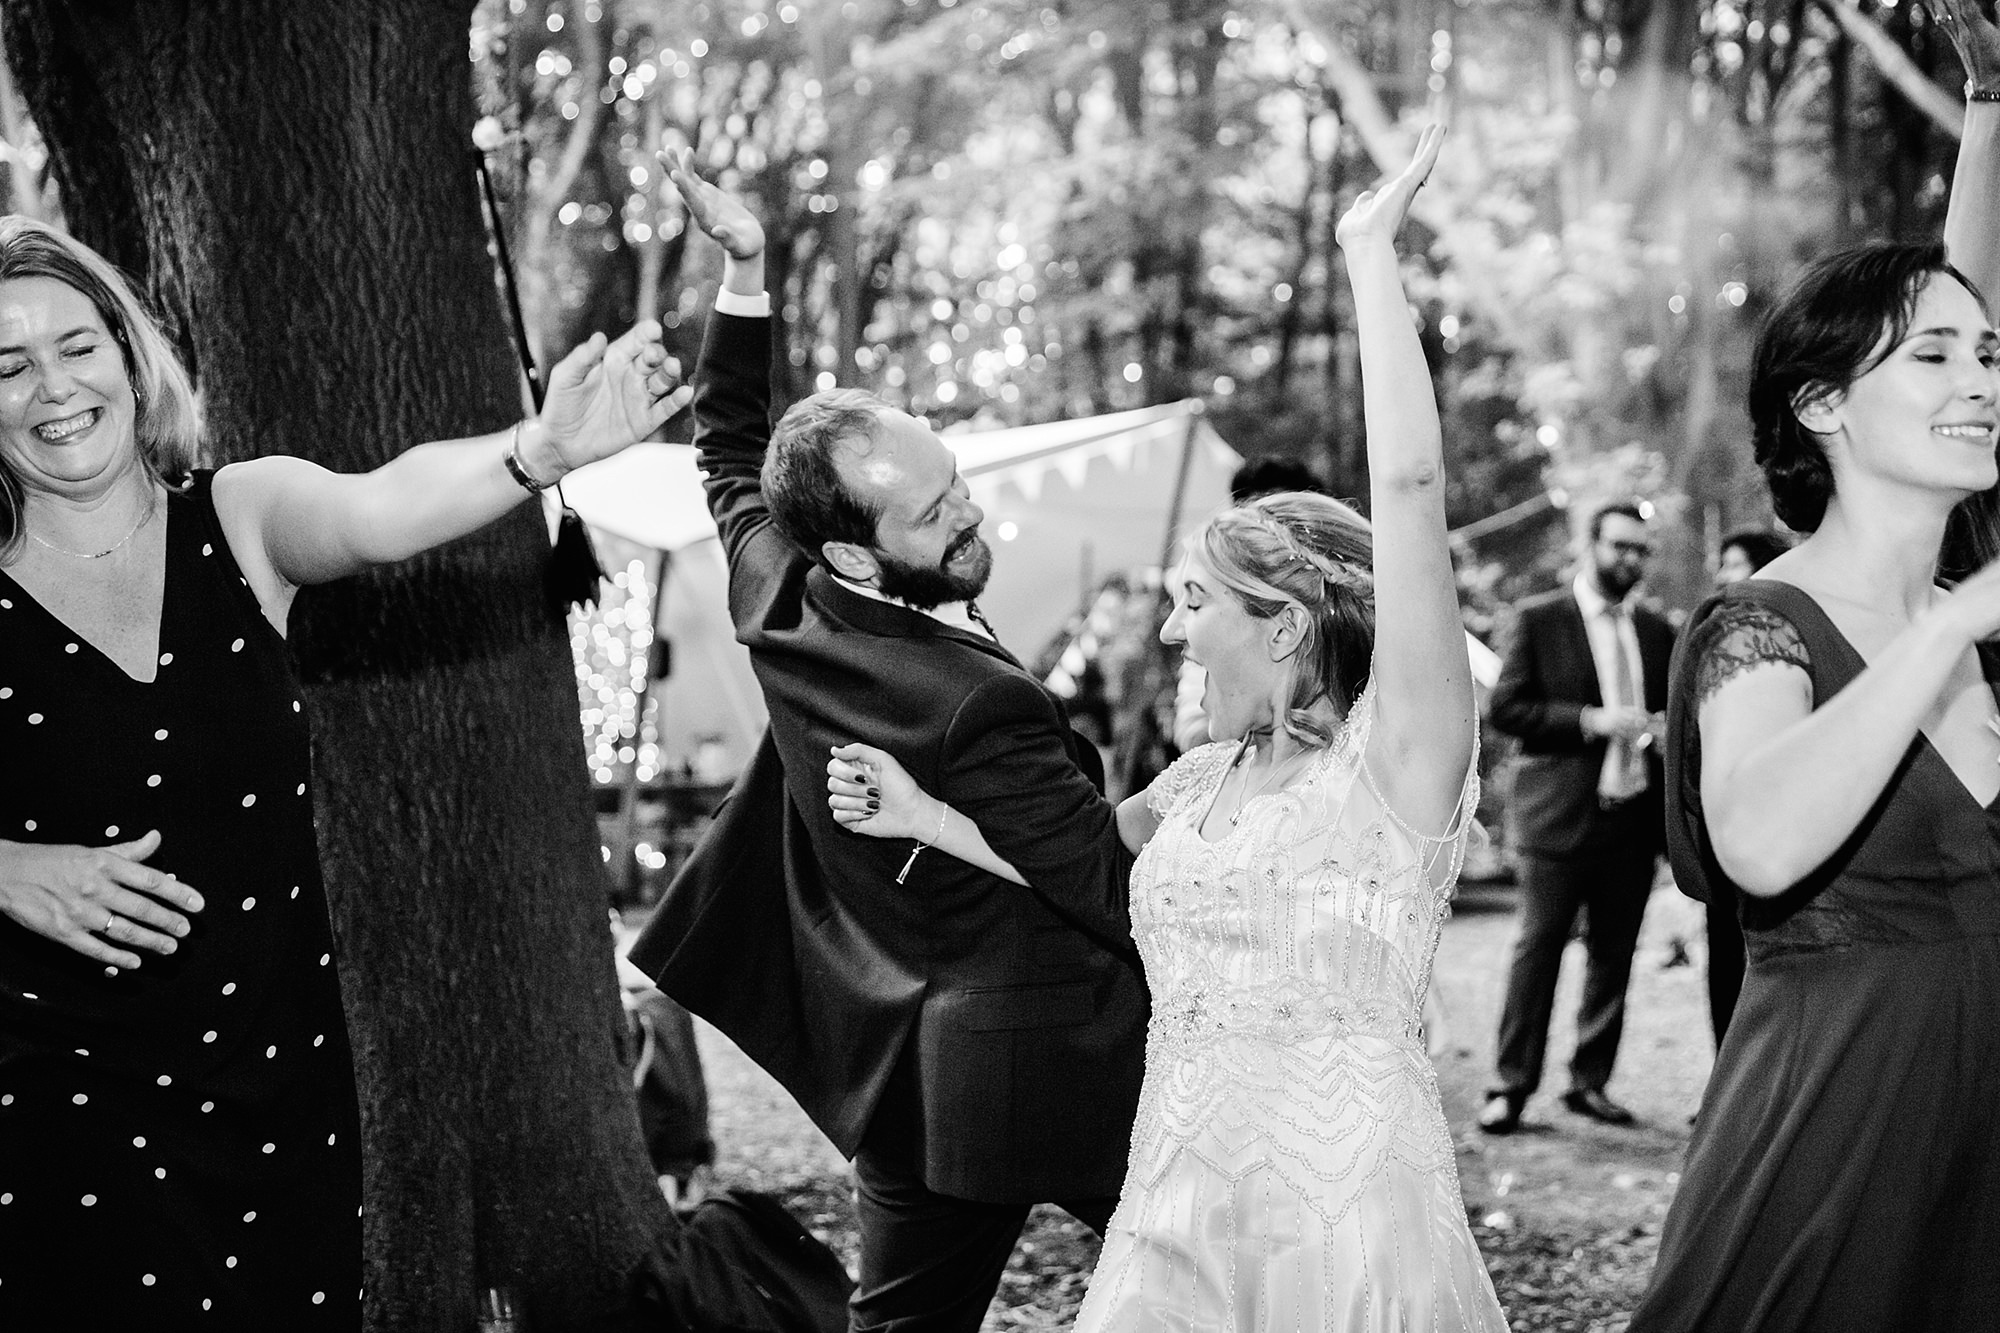 Woodland Weddings Tring bride and groom swing dancing